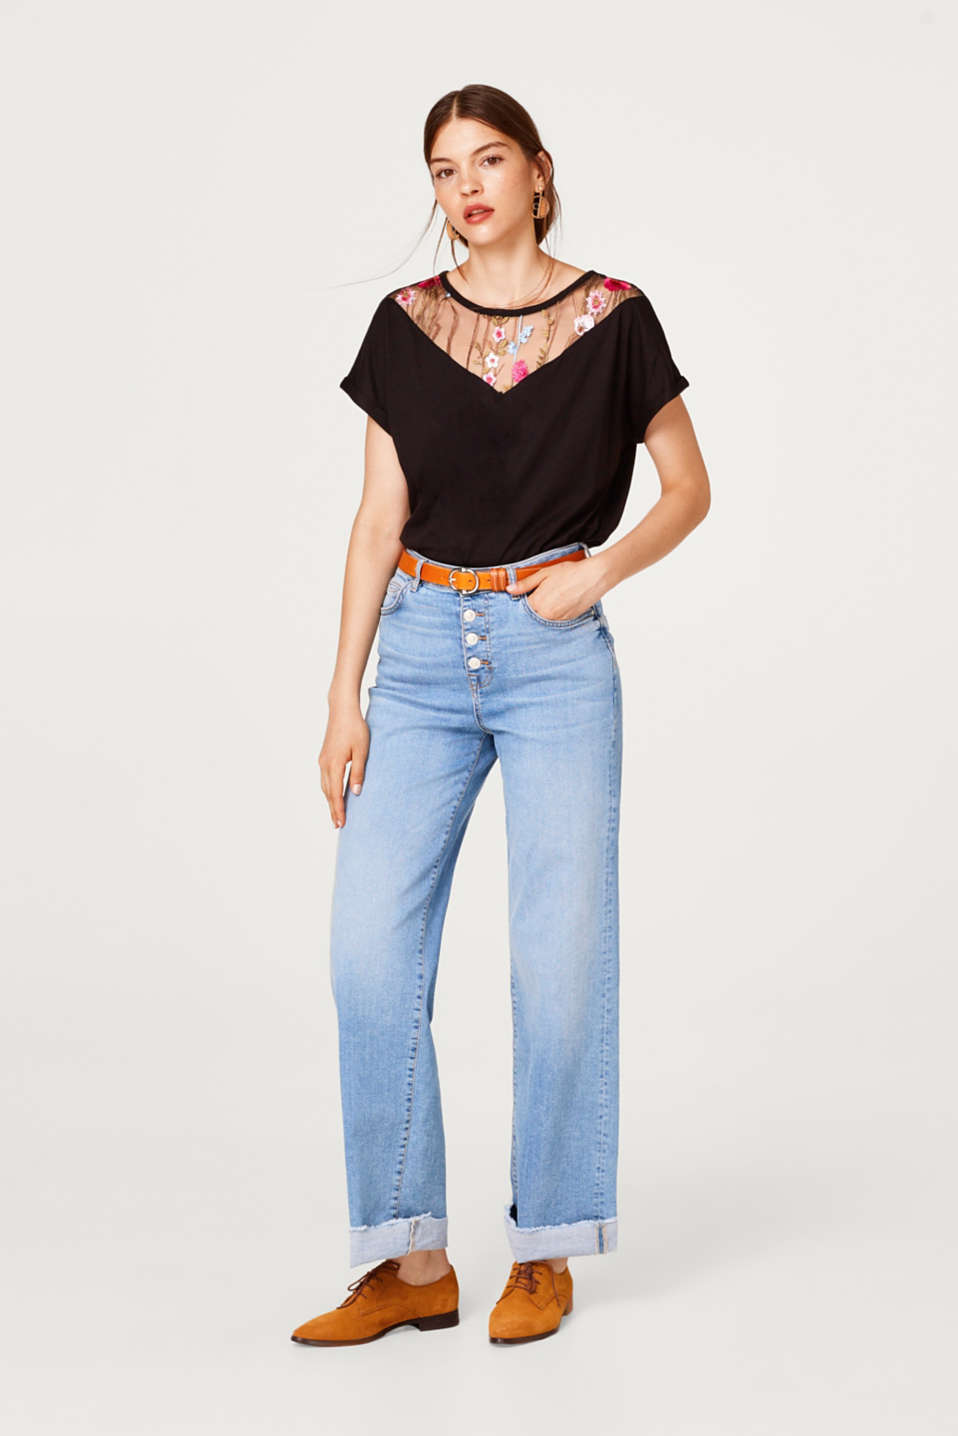 T-shirt with a floral embroidered mesh yoke